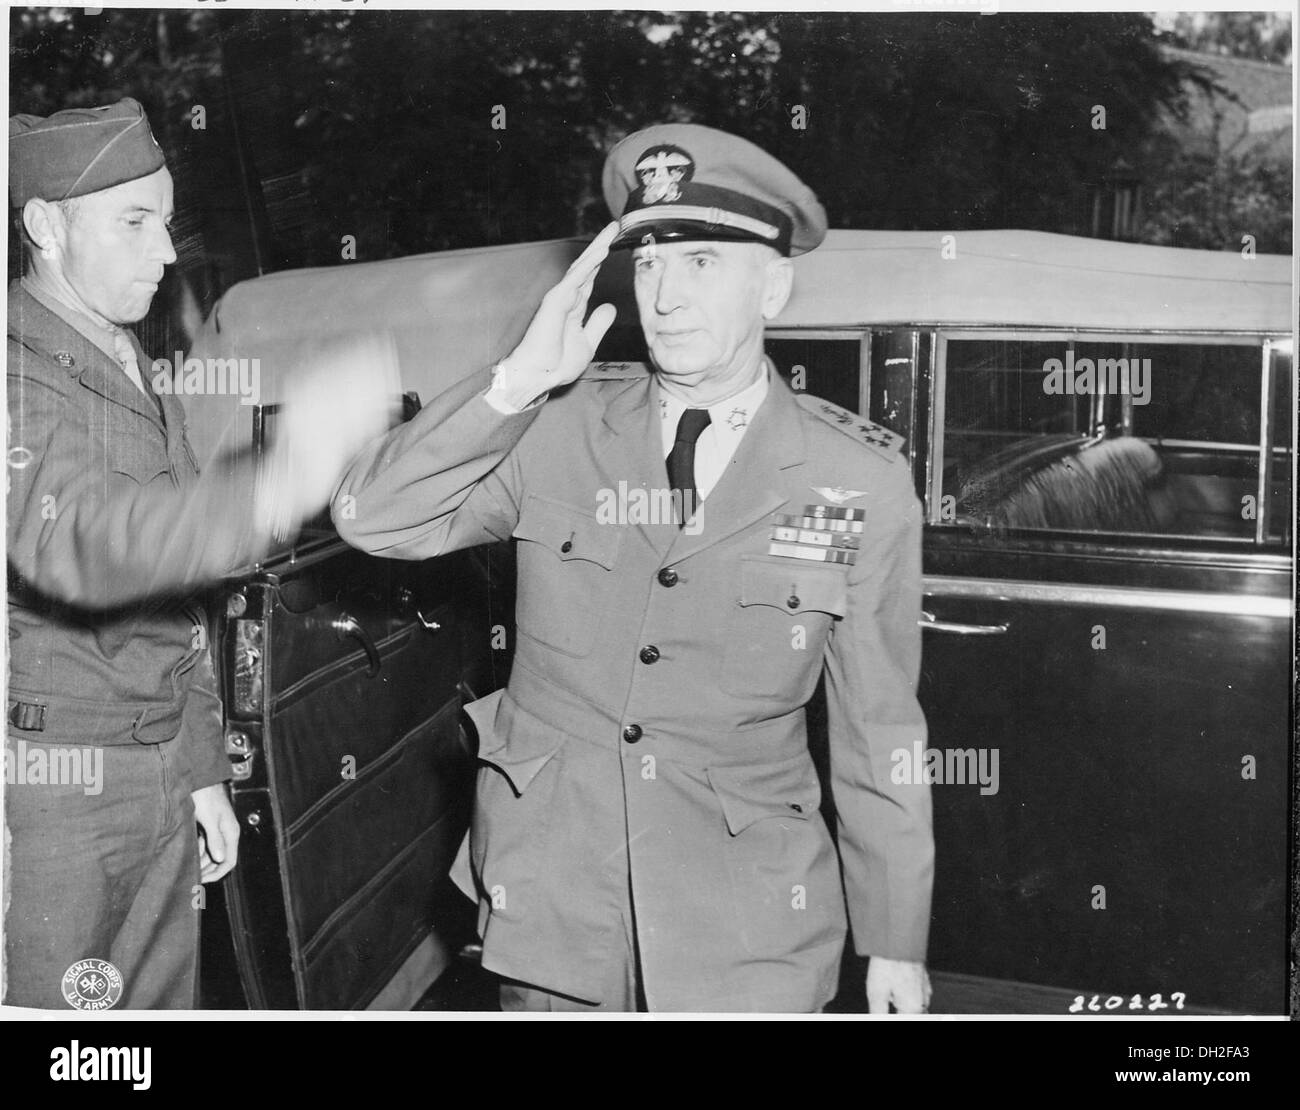 Fleet Admiral Ernest J King U S Navy Arrives At His Quarters And Salutes A Solider During The Potsdam Conference 199002